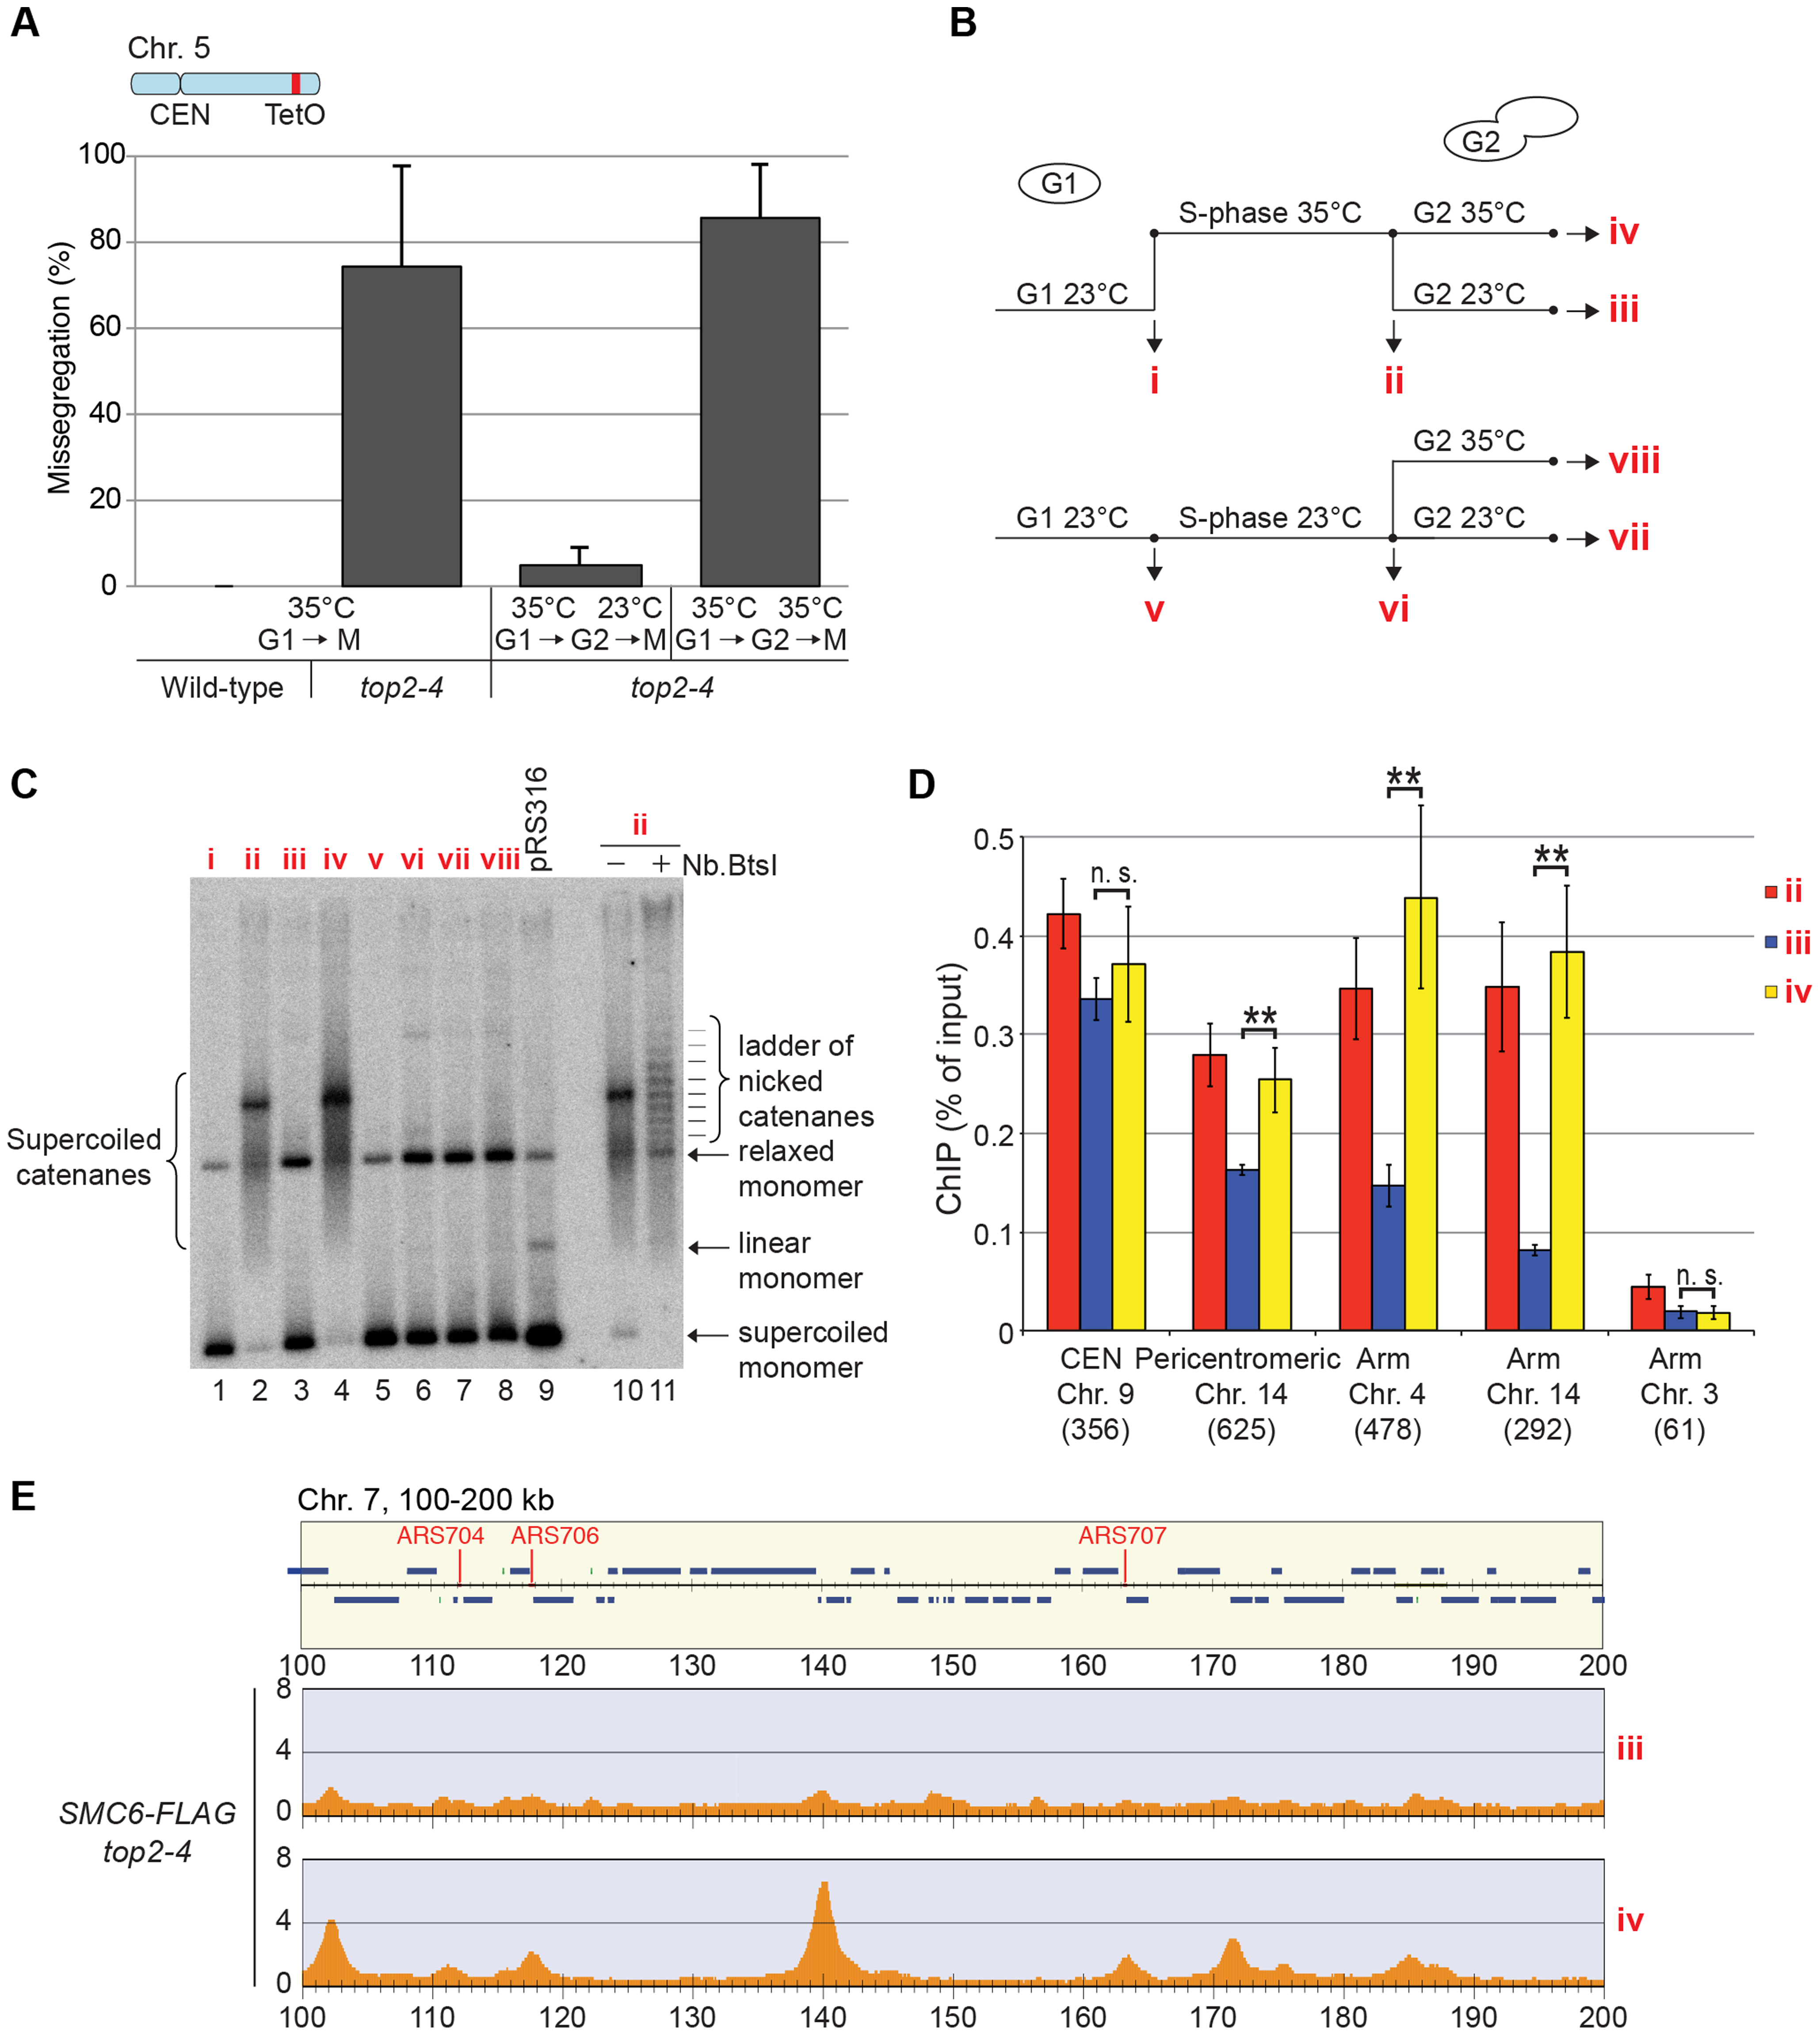 Restoration of Top2 function after replication removes Smc5/6 from chromosomes.